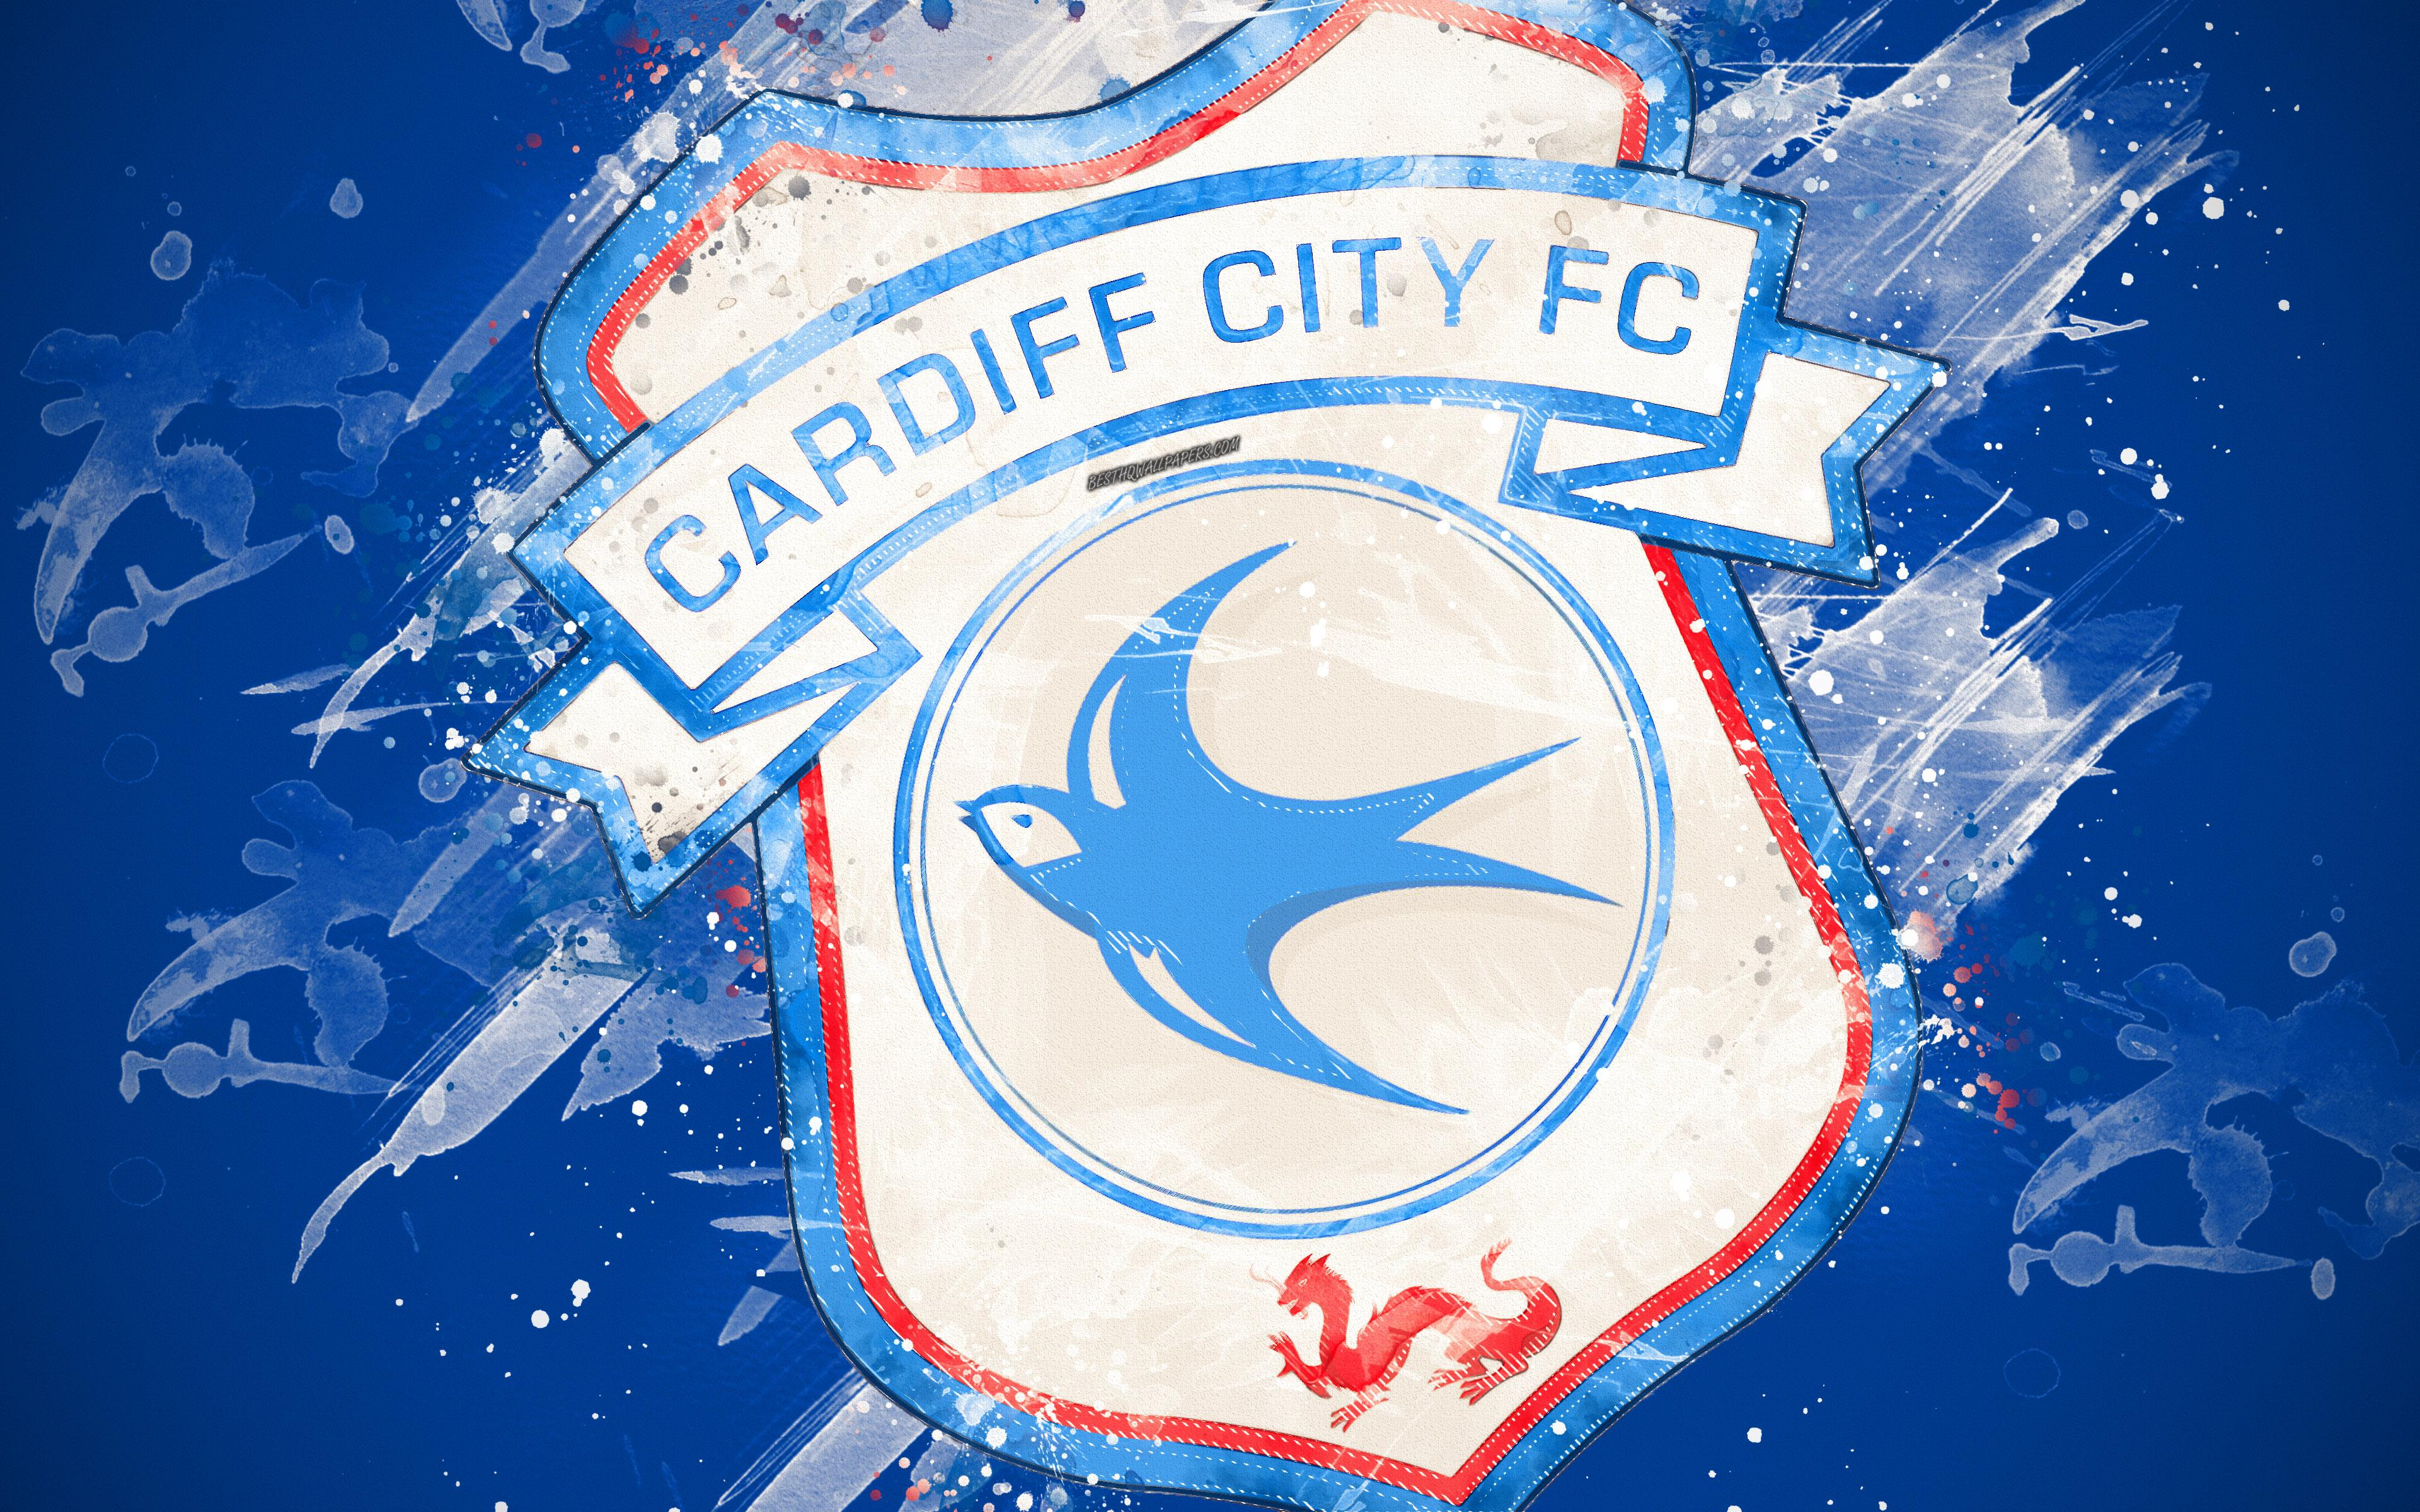 Download wallpapers Cardiff City FC, 4k, paint art, logo, creative ...